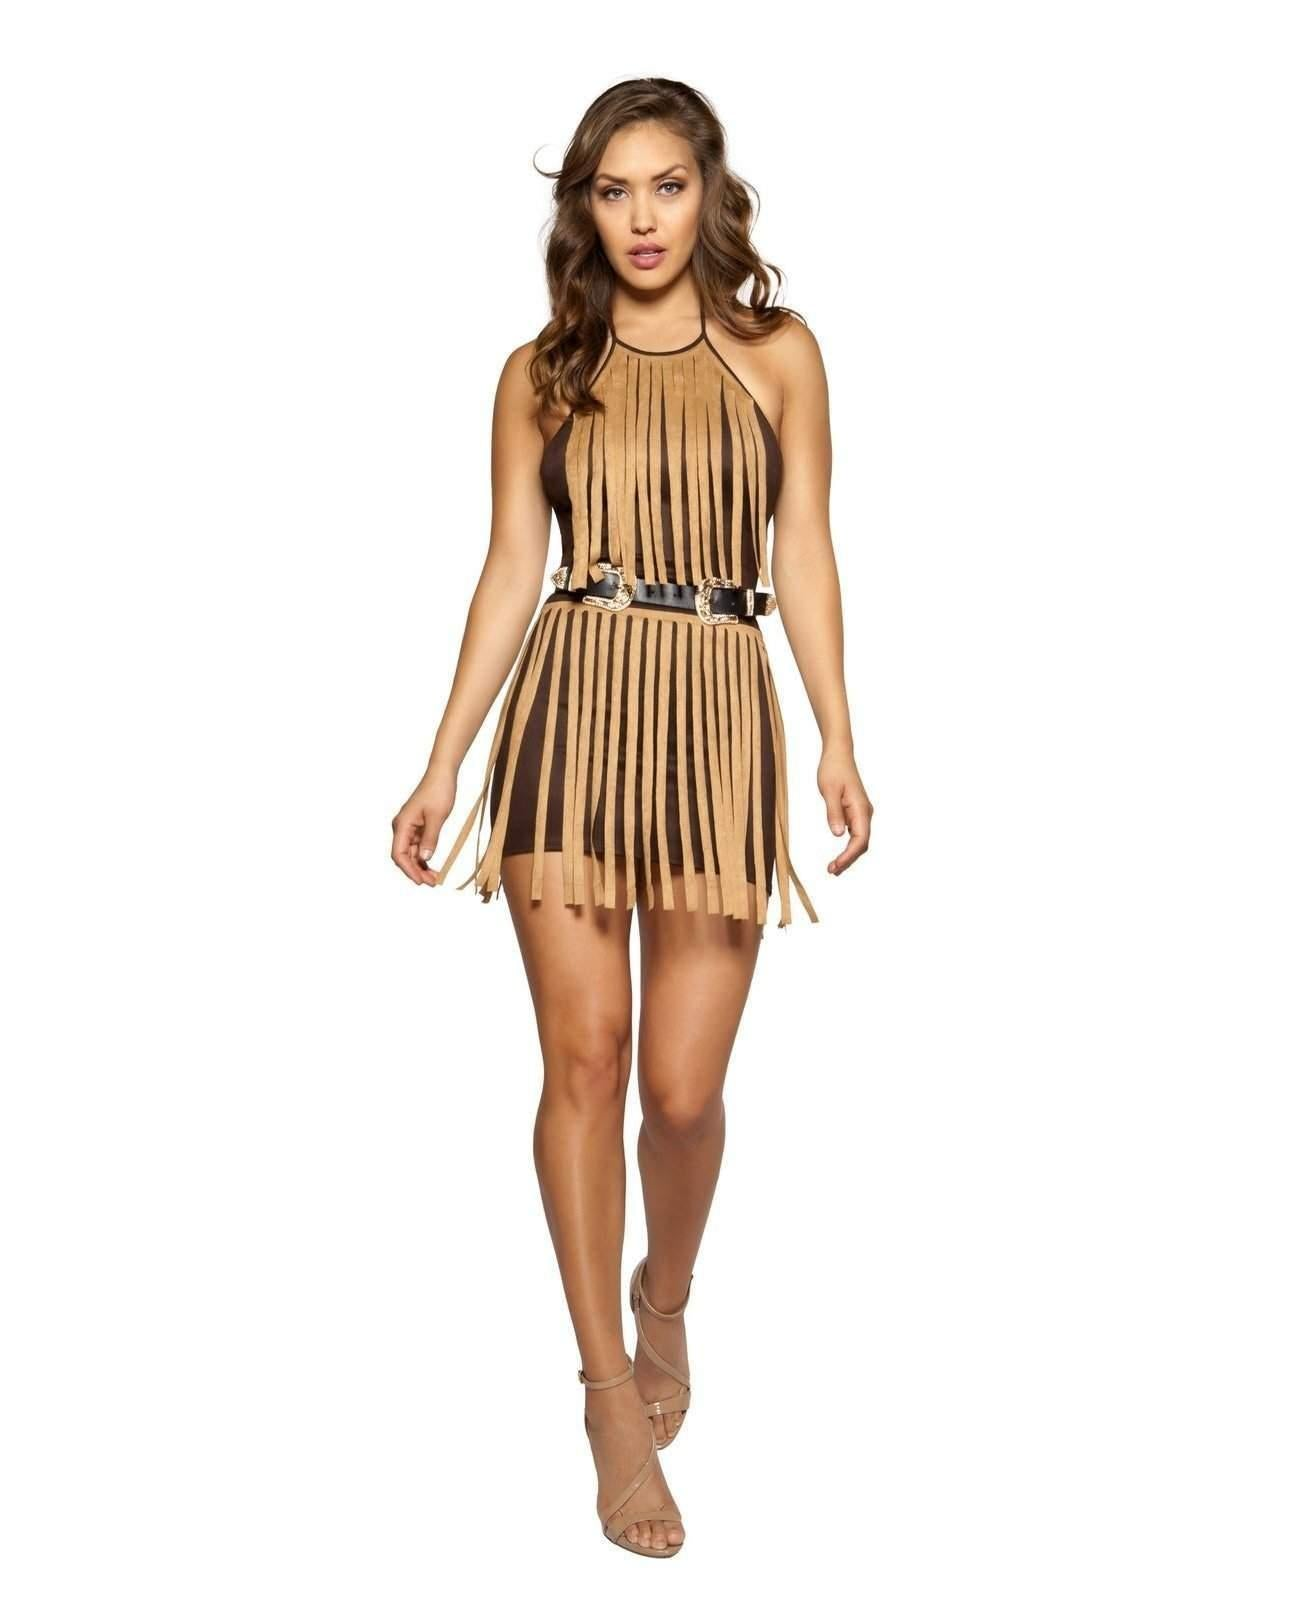 Suede Fringe Mini Dress club wear Size SmallColor Black/TurquoiseNakees